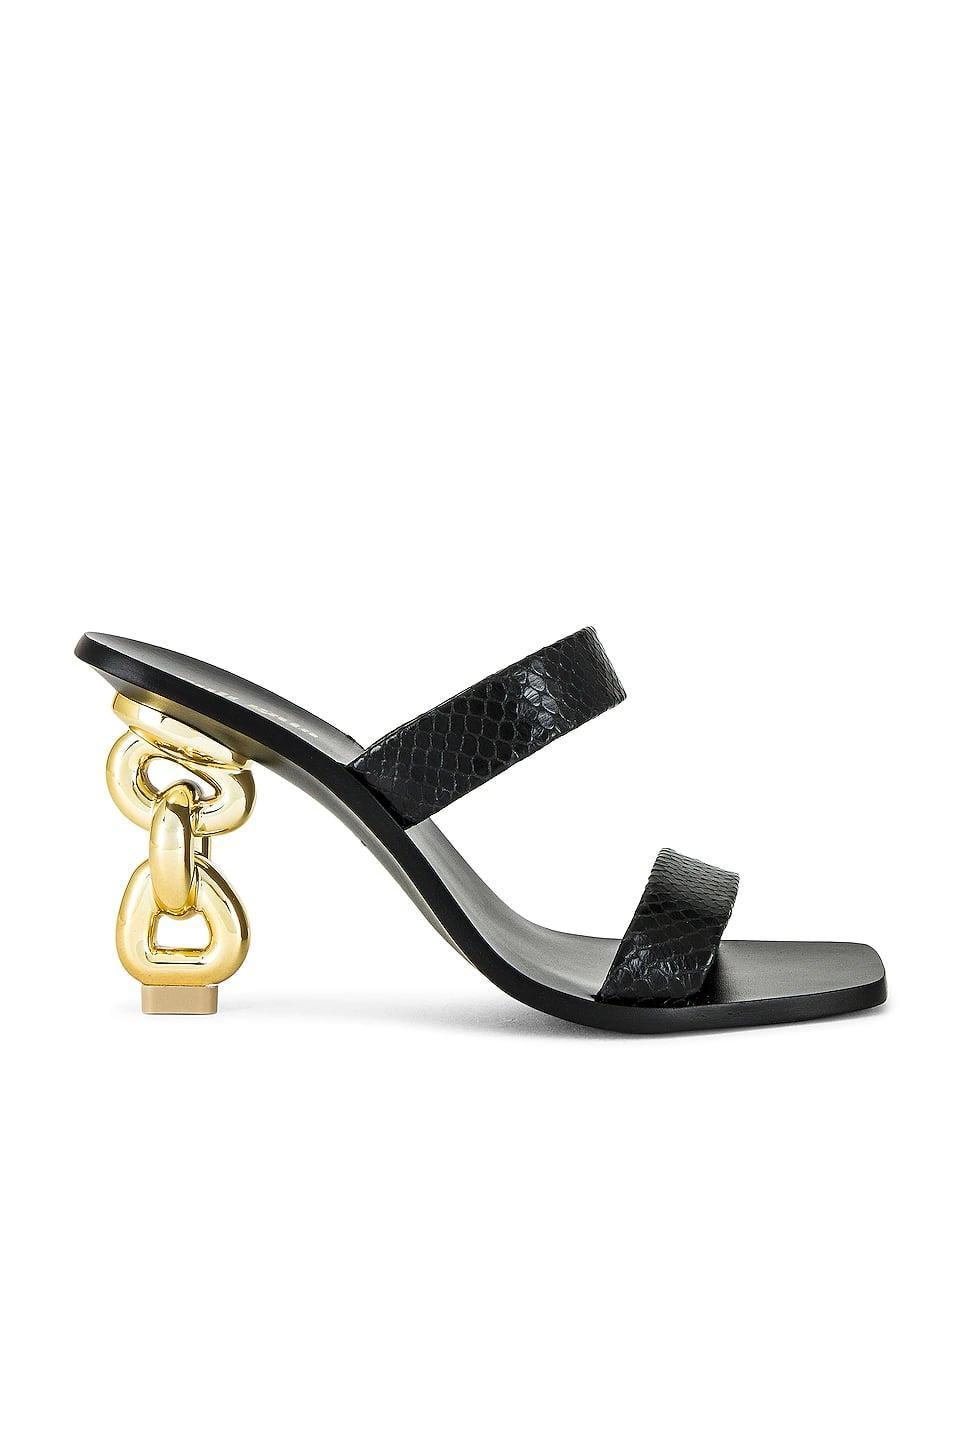 <p>These <span>Cult Gaia Vivianne Sandals</span> ($428) look like your classic black sandal from the front. The chain link heel, though, tells a different story, and adds a fun detail to a staple shape.</p>